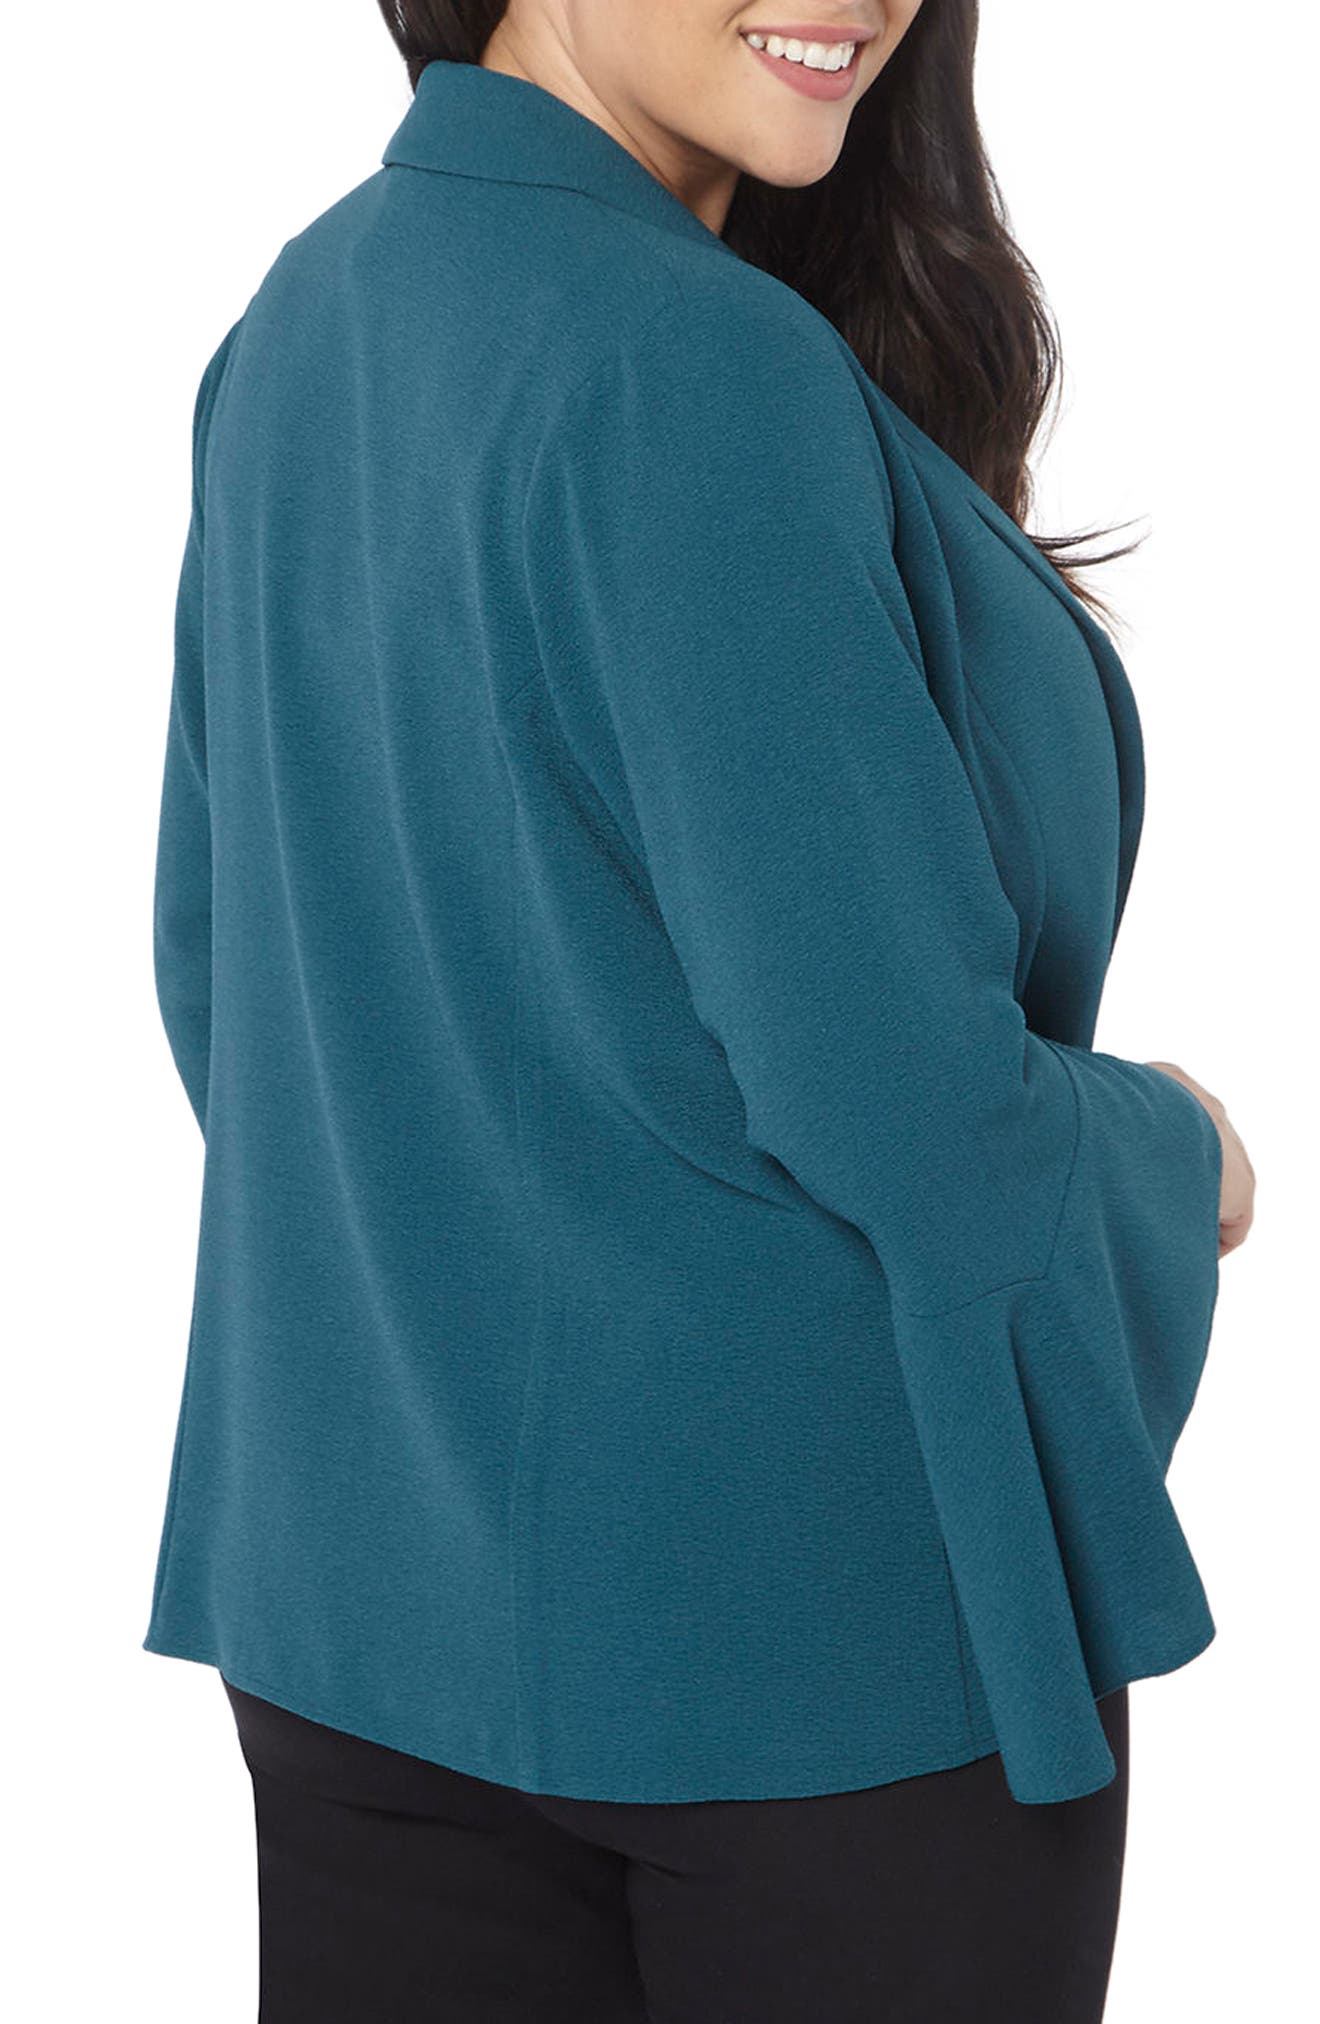 Bell Sleeve Crepe Jacket,                             Alternate thumbnail 3, color,                             Teal